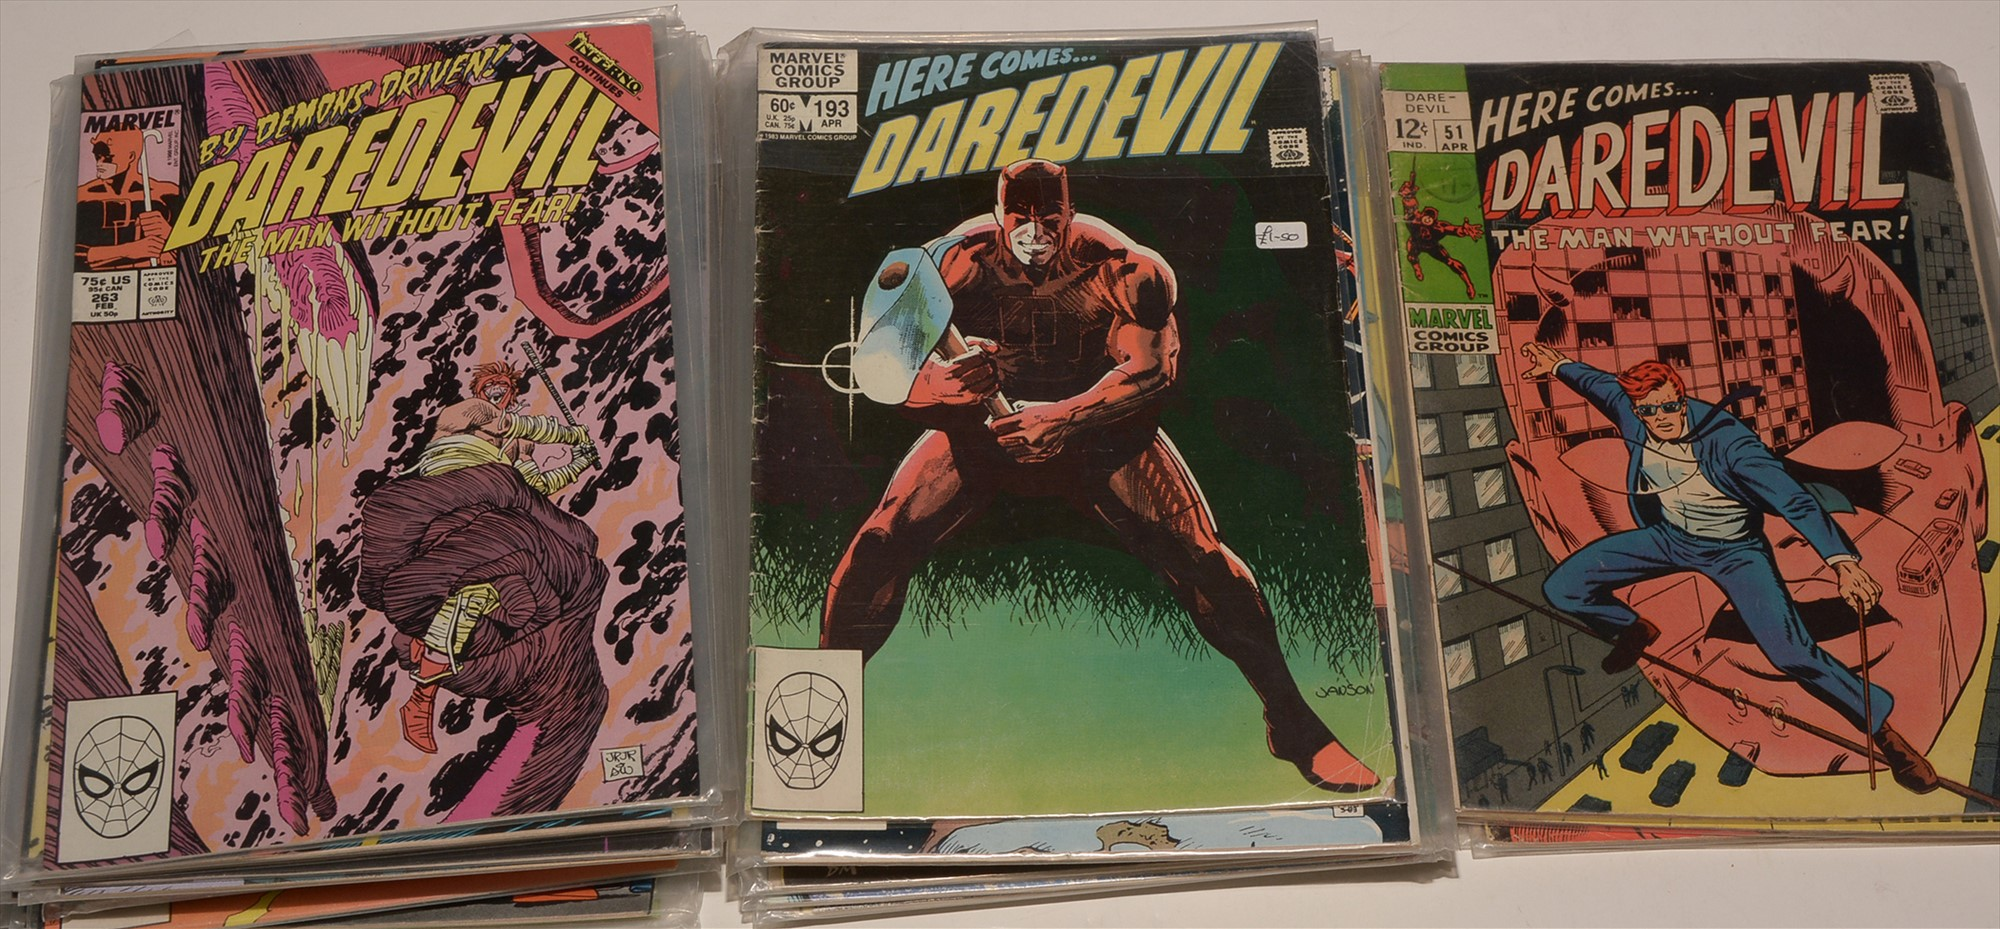 Daredevil No's. 51, 52, 53, 55, 193, 198, 200, 218, 220 and sundry subsequent issues, highest number